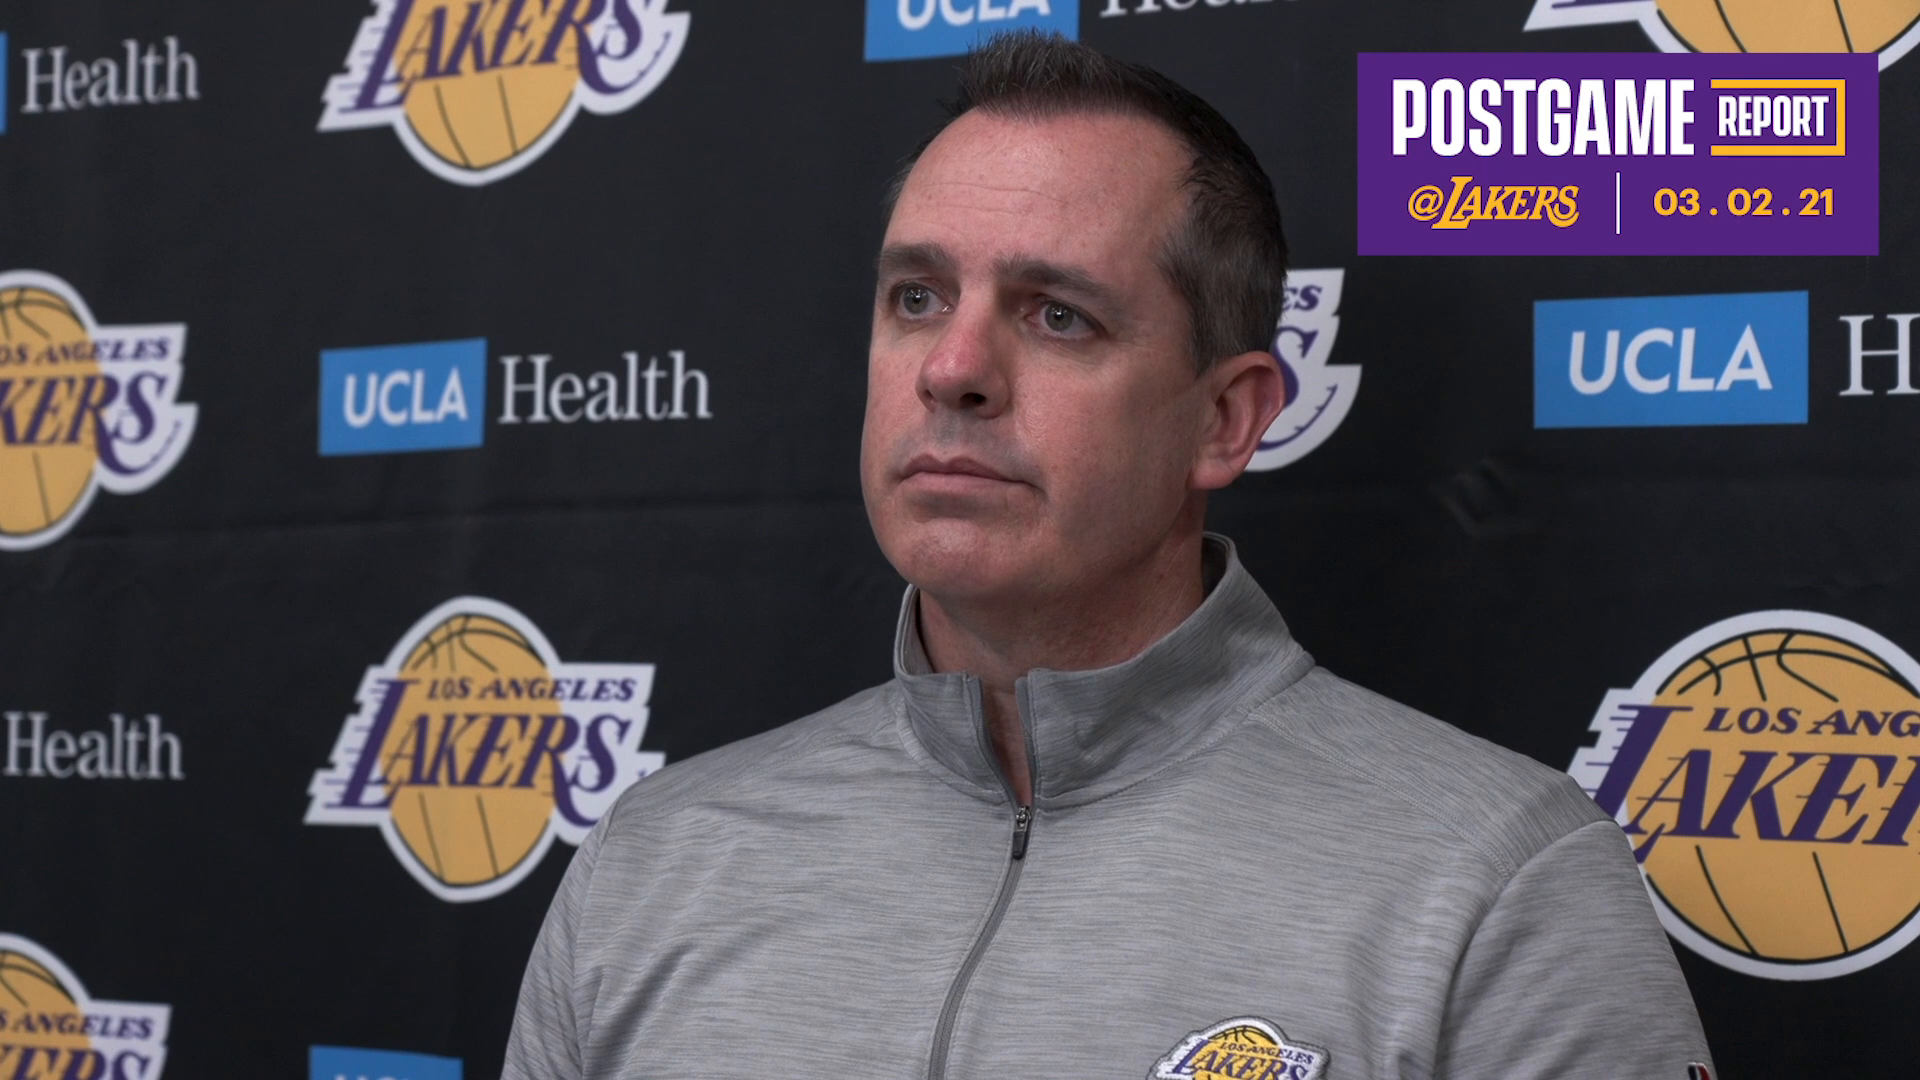 Lakers Postgame: Frank Vogel (3/2/21)